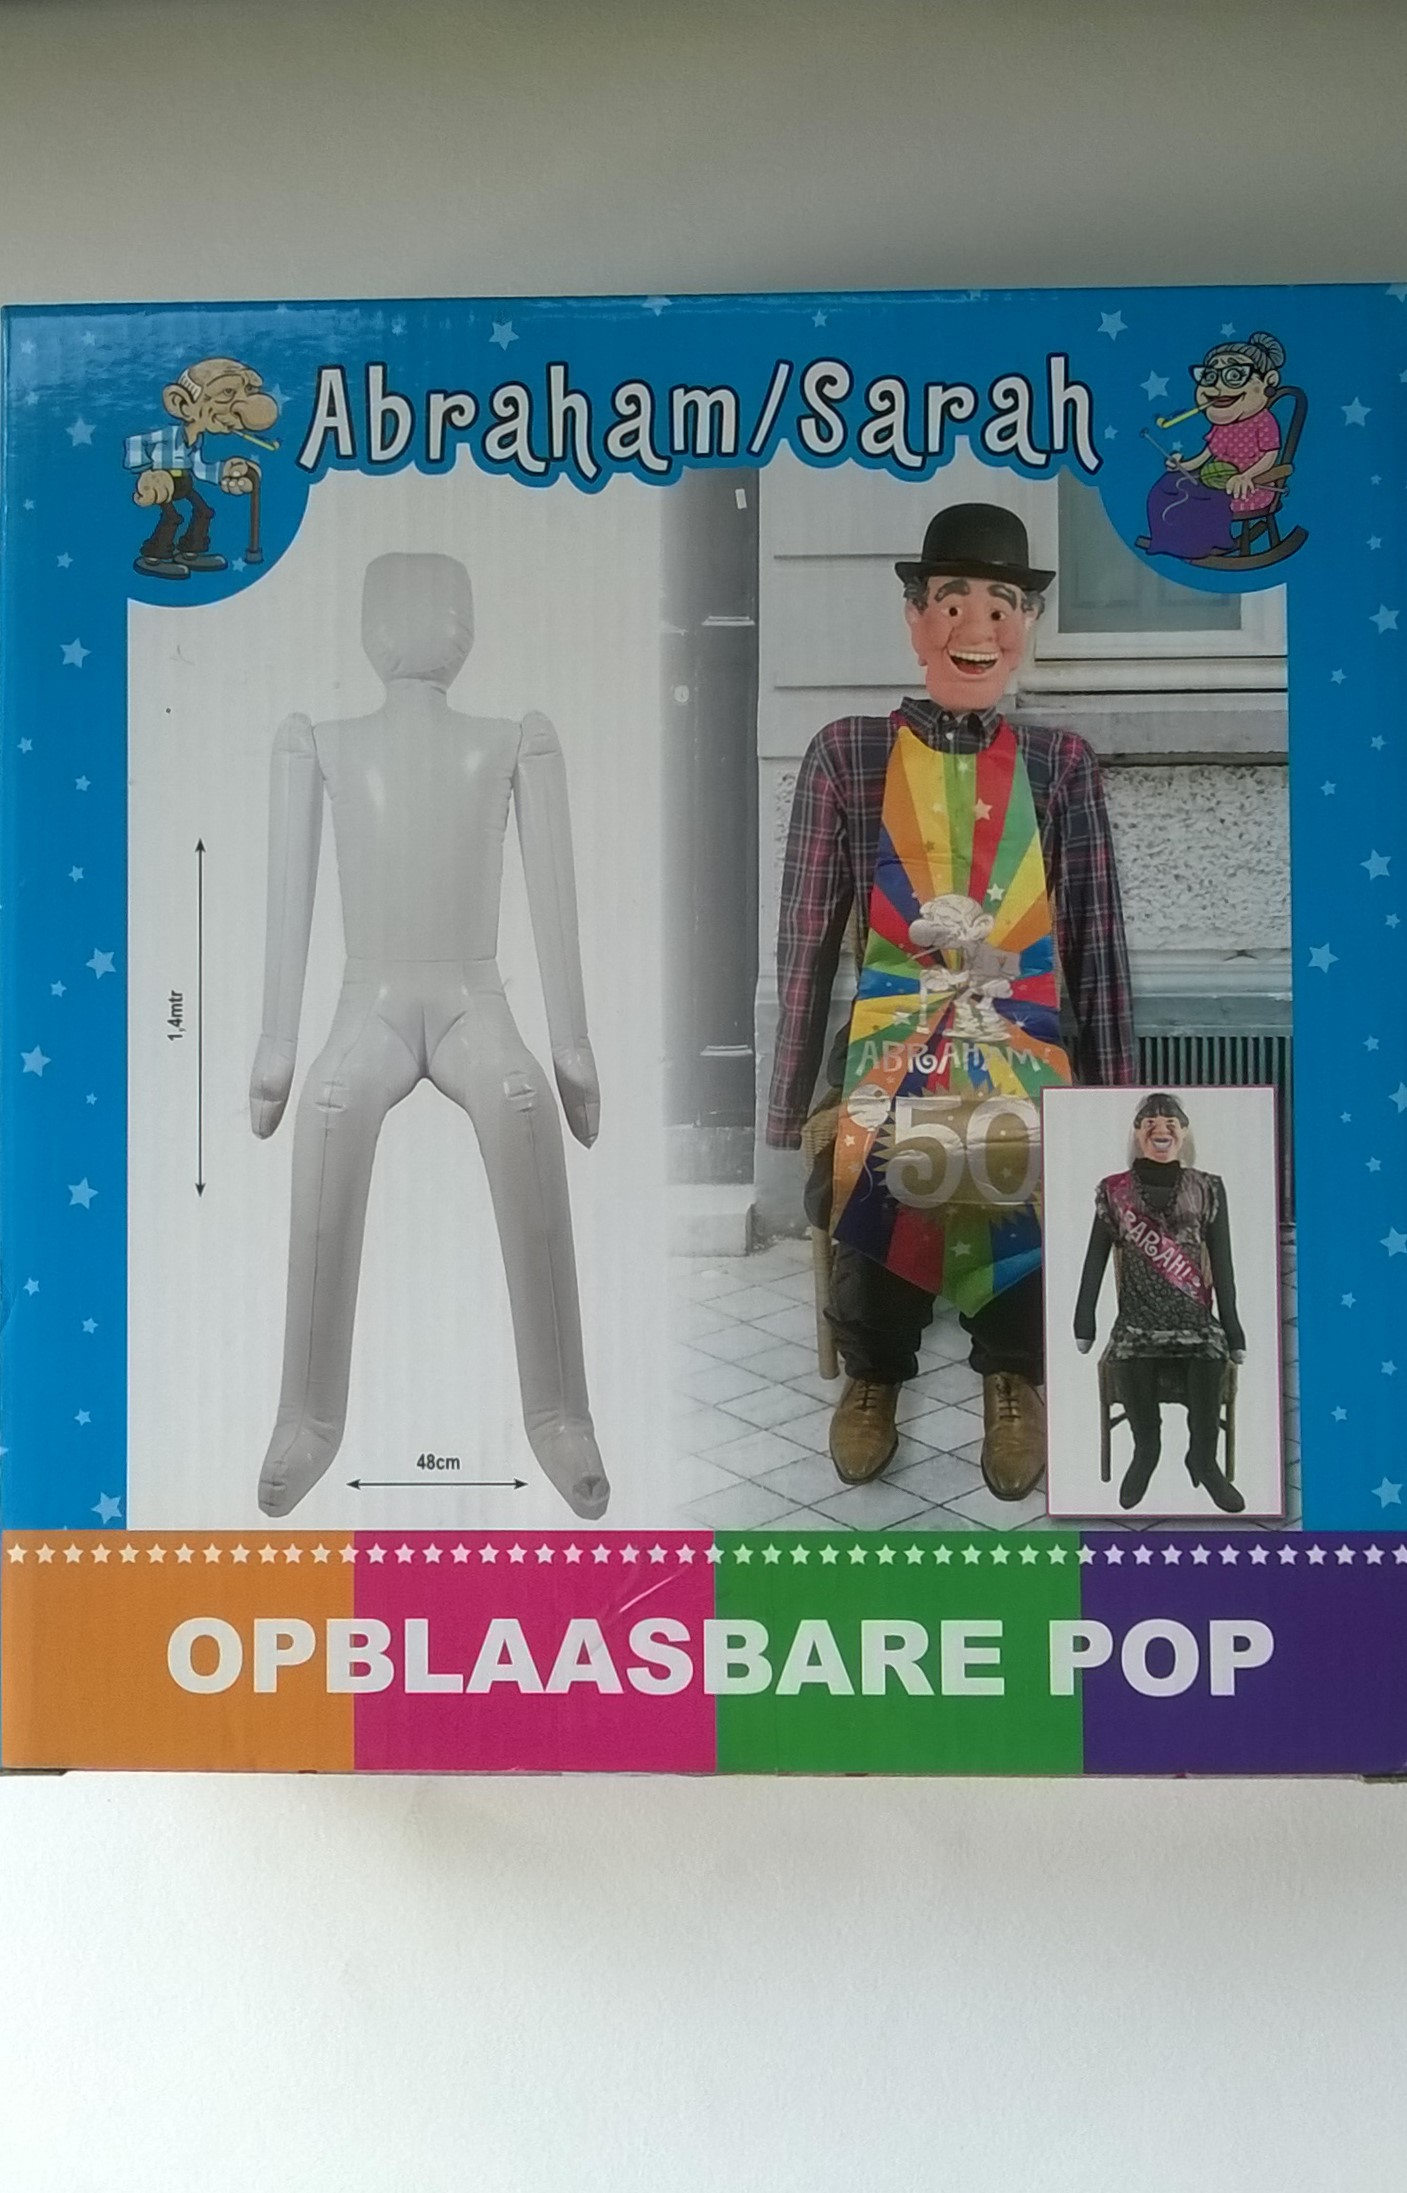 Opblaasbare pop